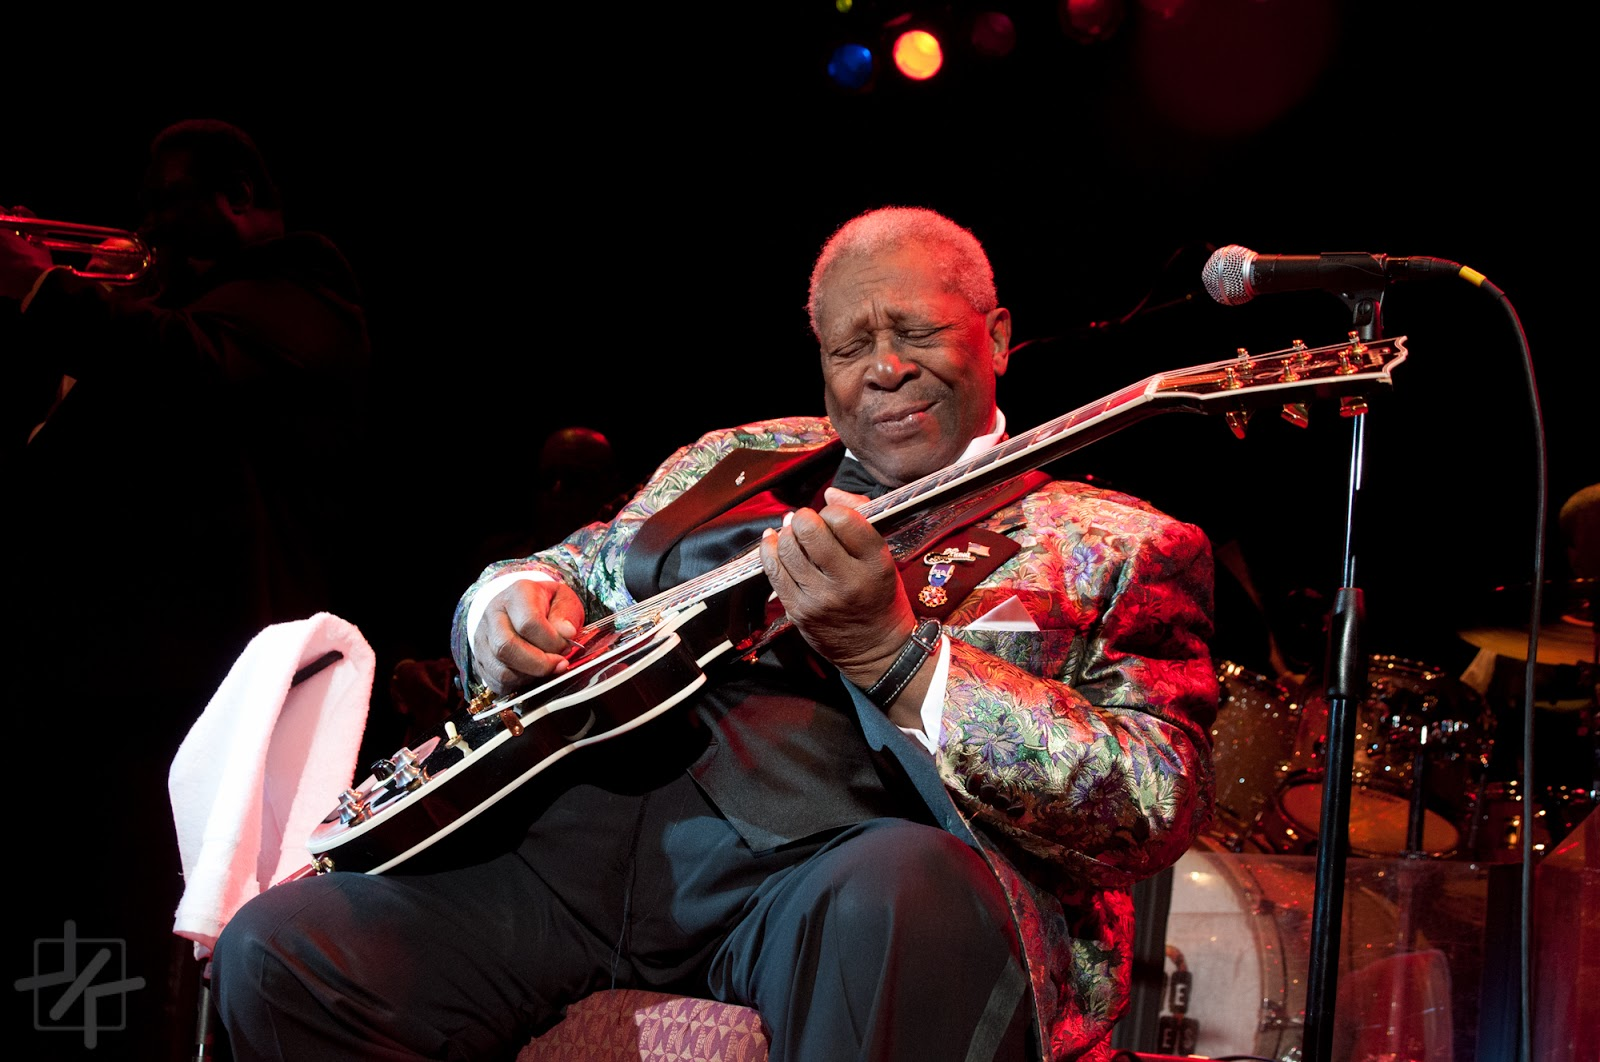 b b king Riley b king (september 16, 1925 – may 14, 2015), known professionally as  bb king, was an american blues singer, electric guitarist, songwriter, and record .